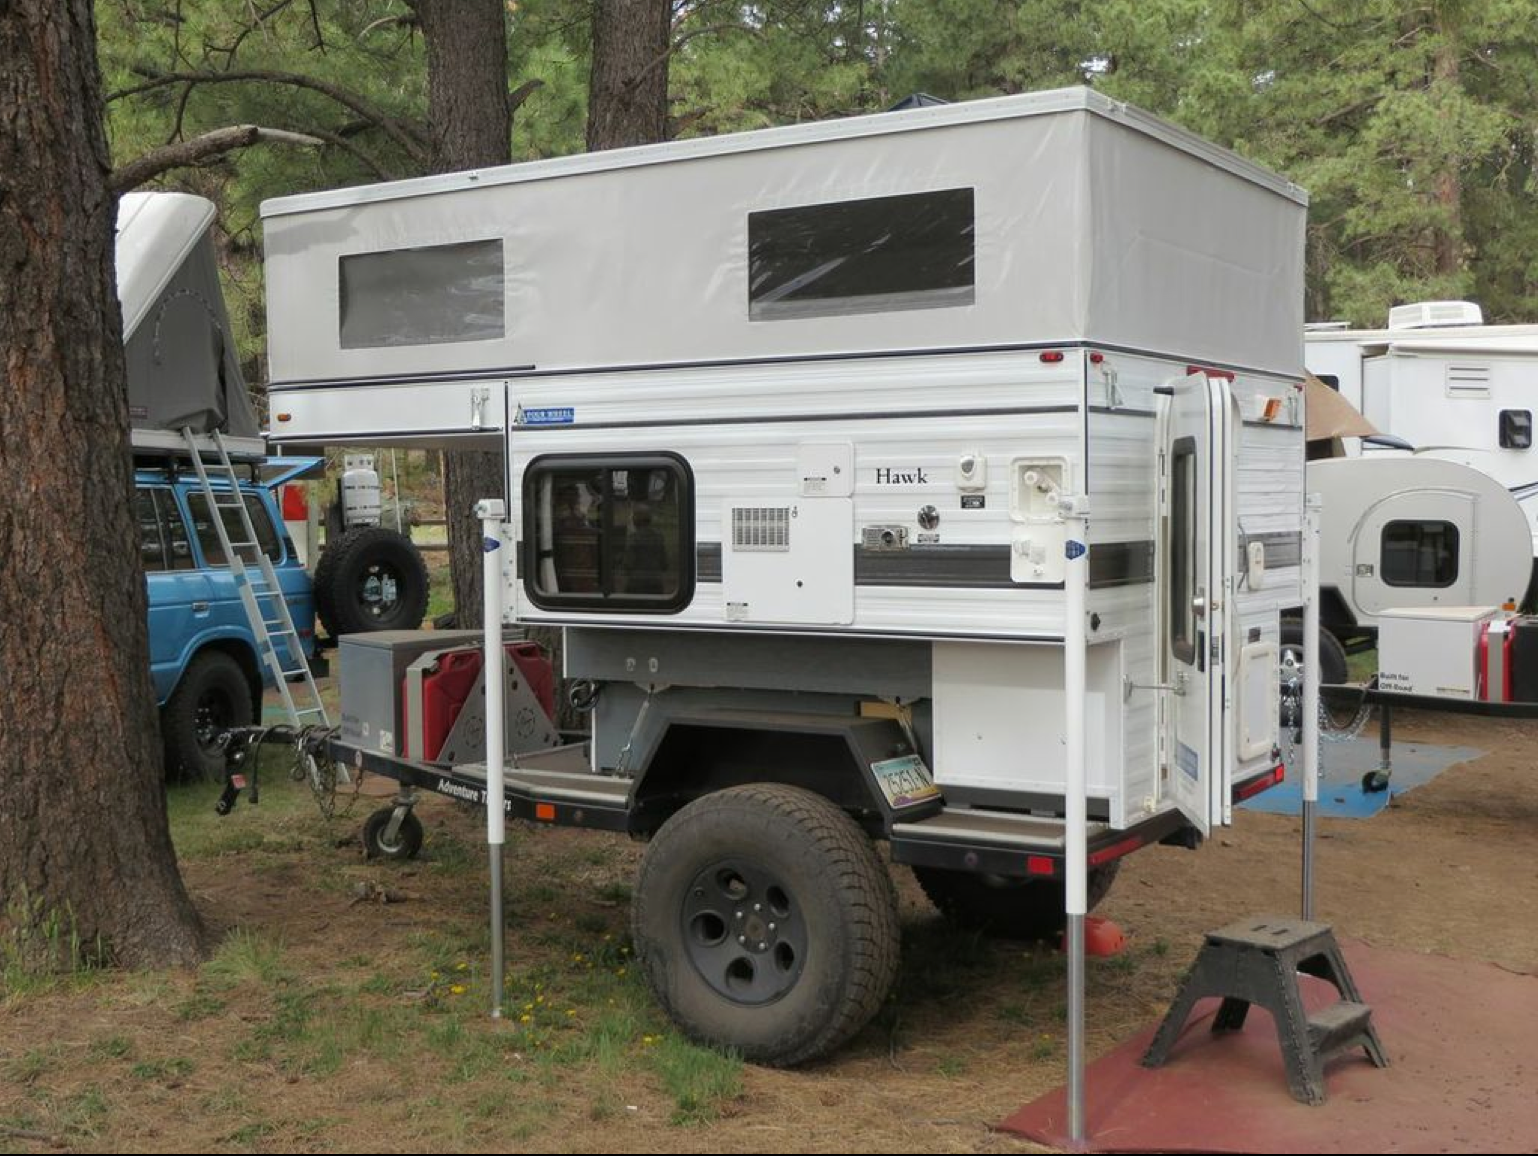 FWC Hawk on offroad trailer at 2014 Overland Expo  | Bug Out